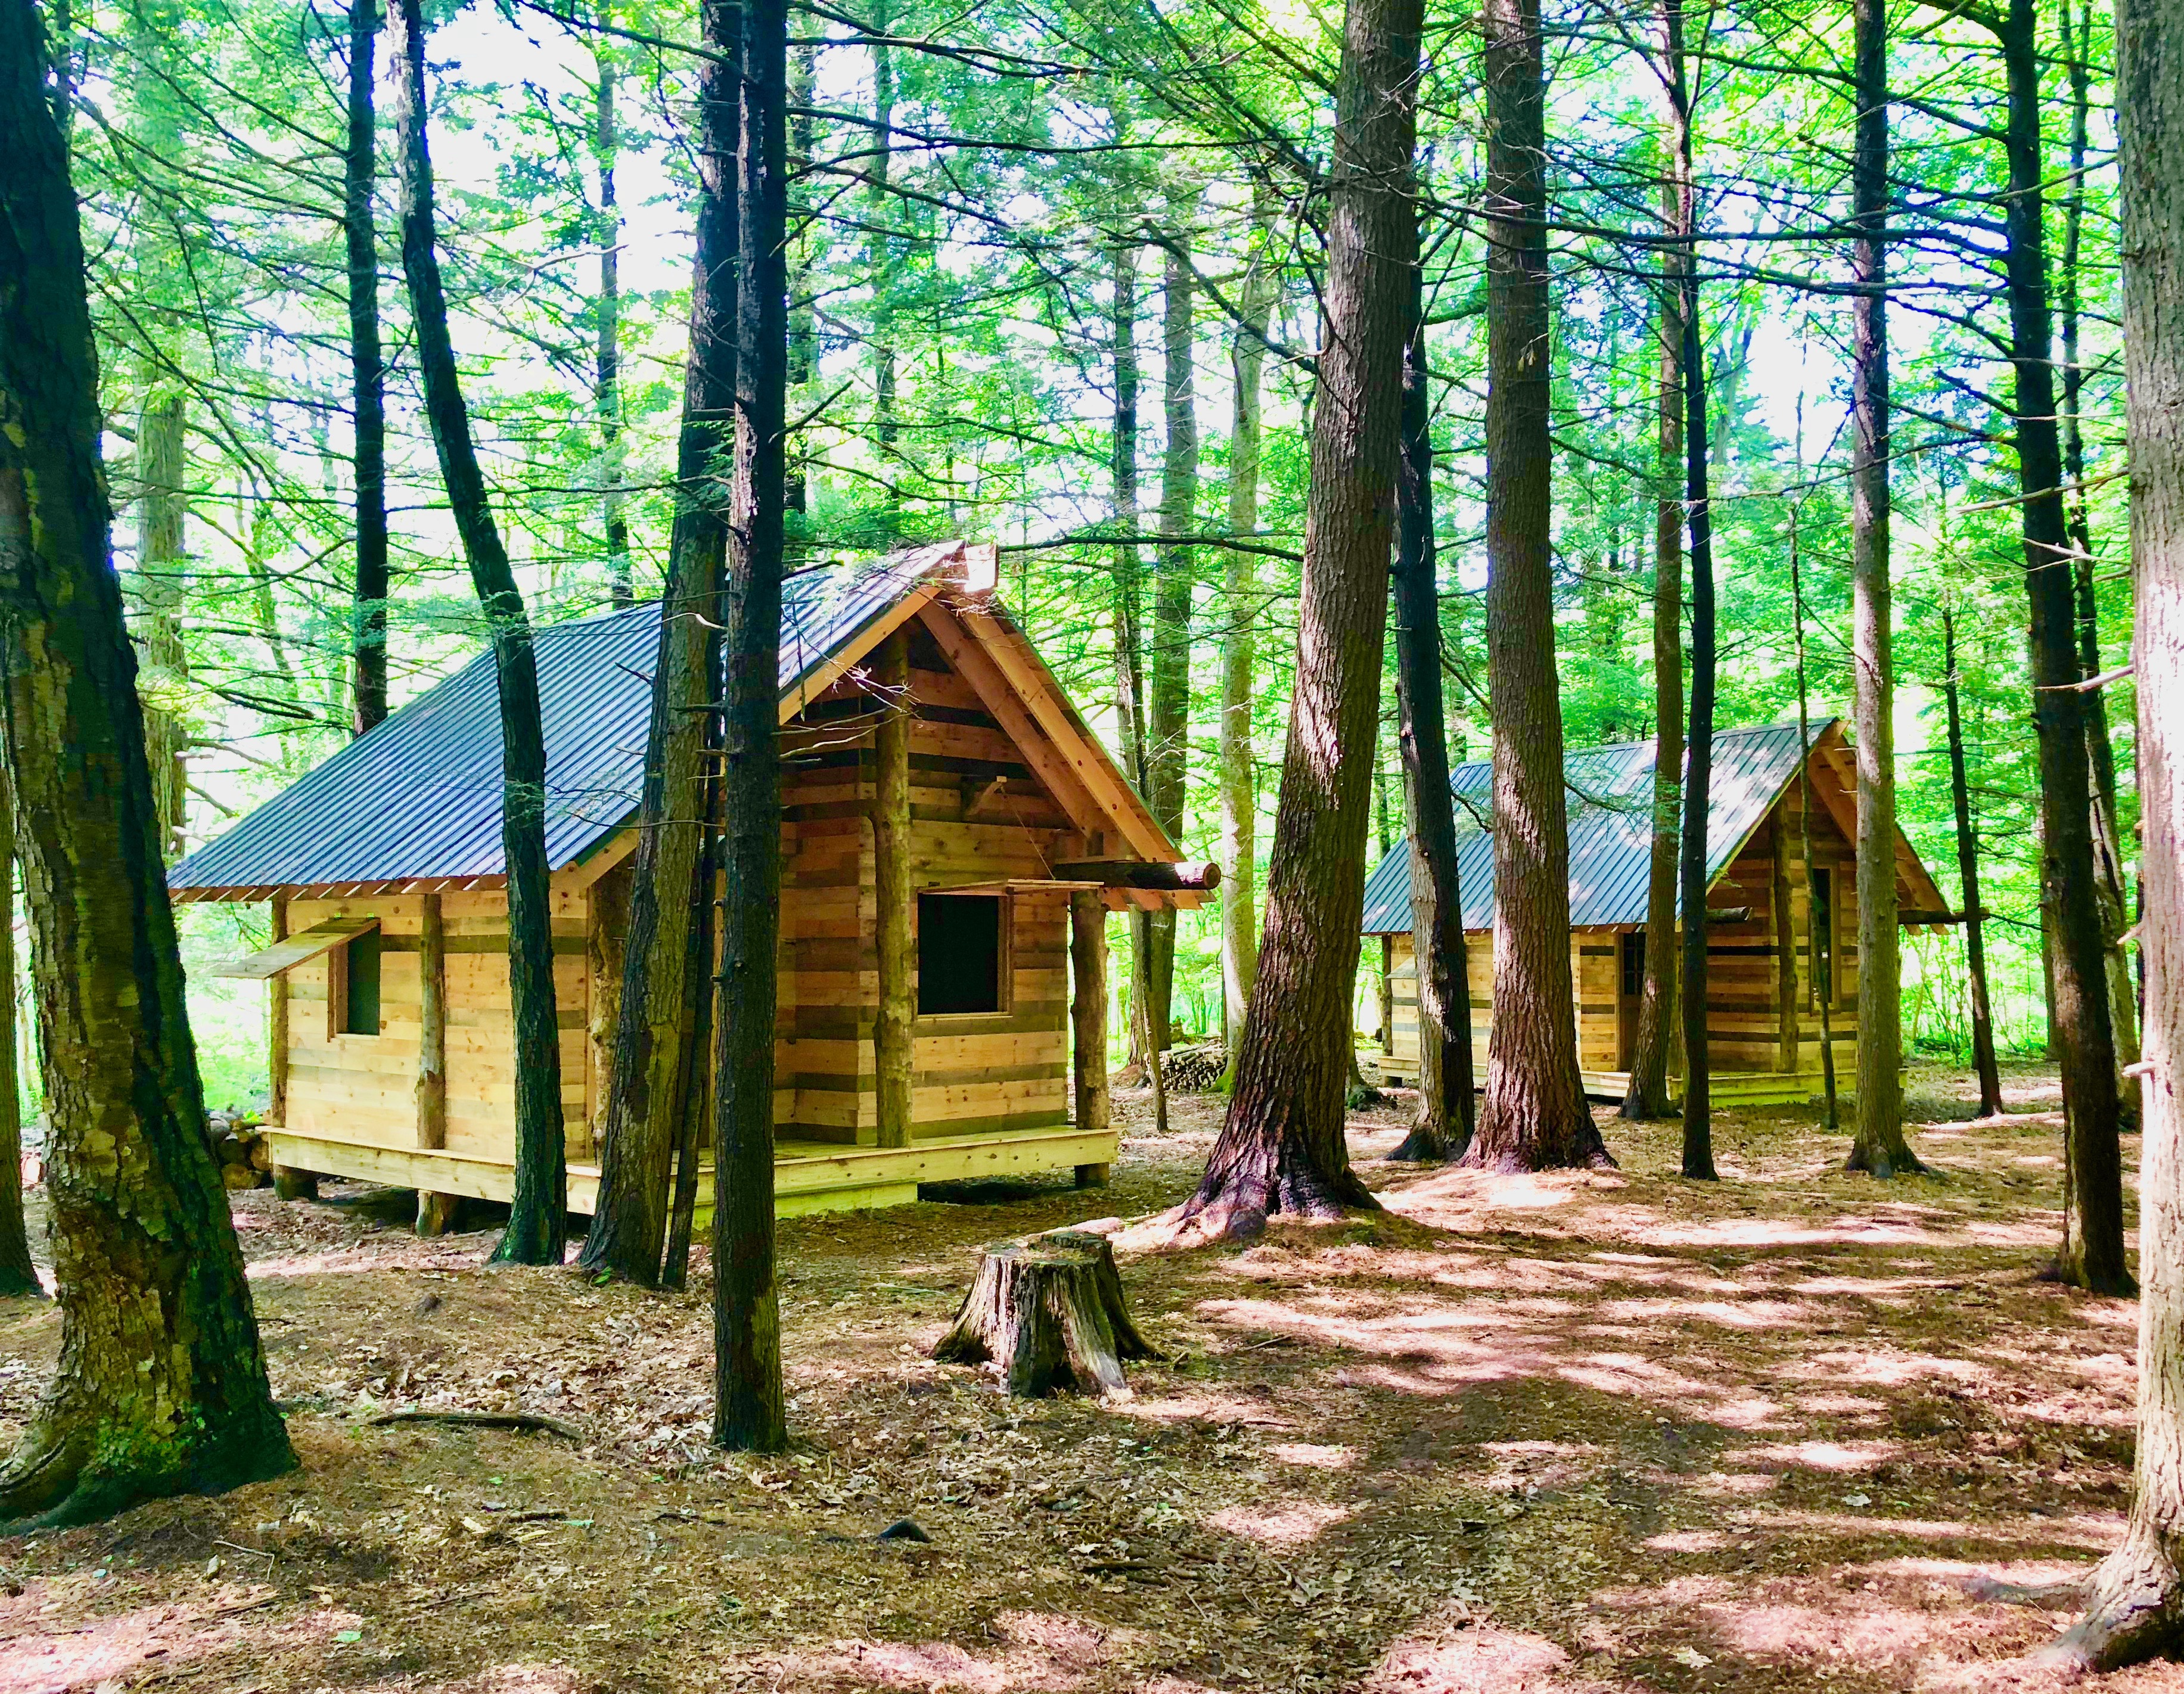 Timbertown Cabin 1 Farm Stays For Rent In West Sand Lake New York United States